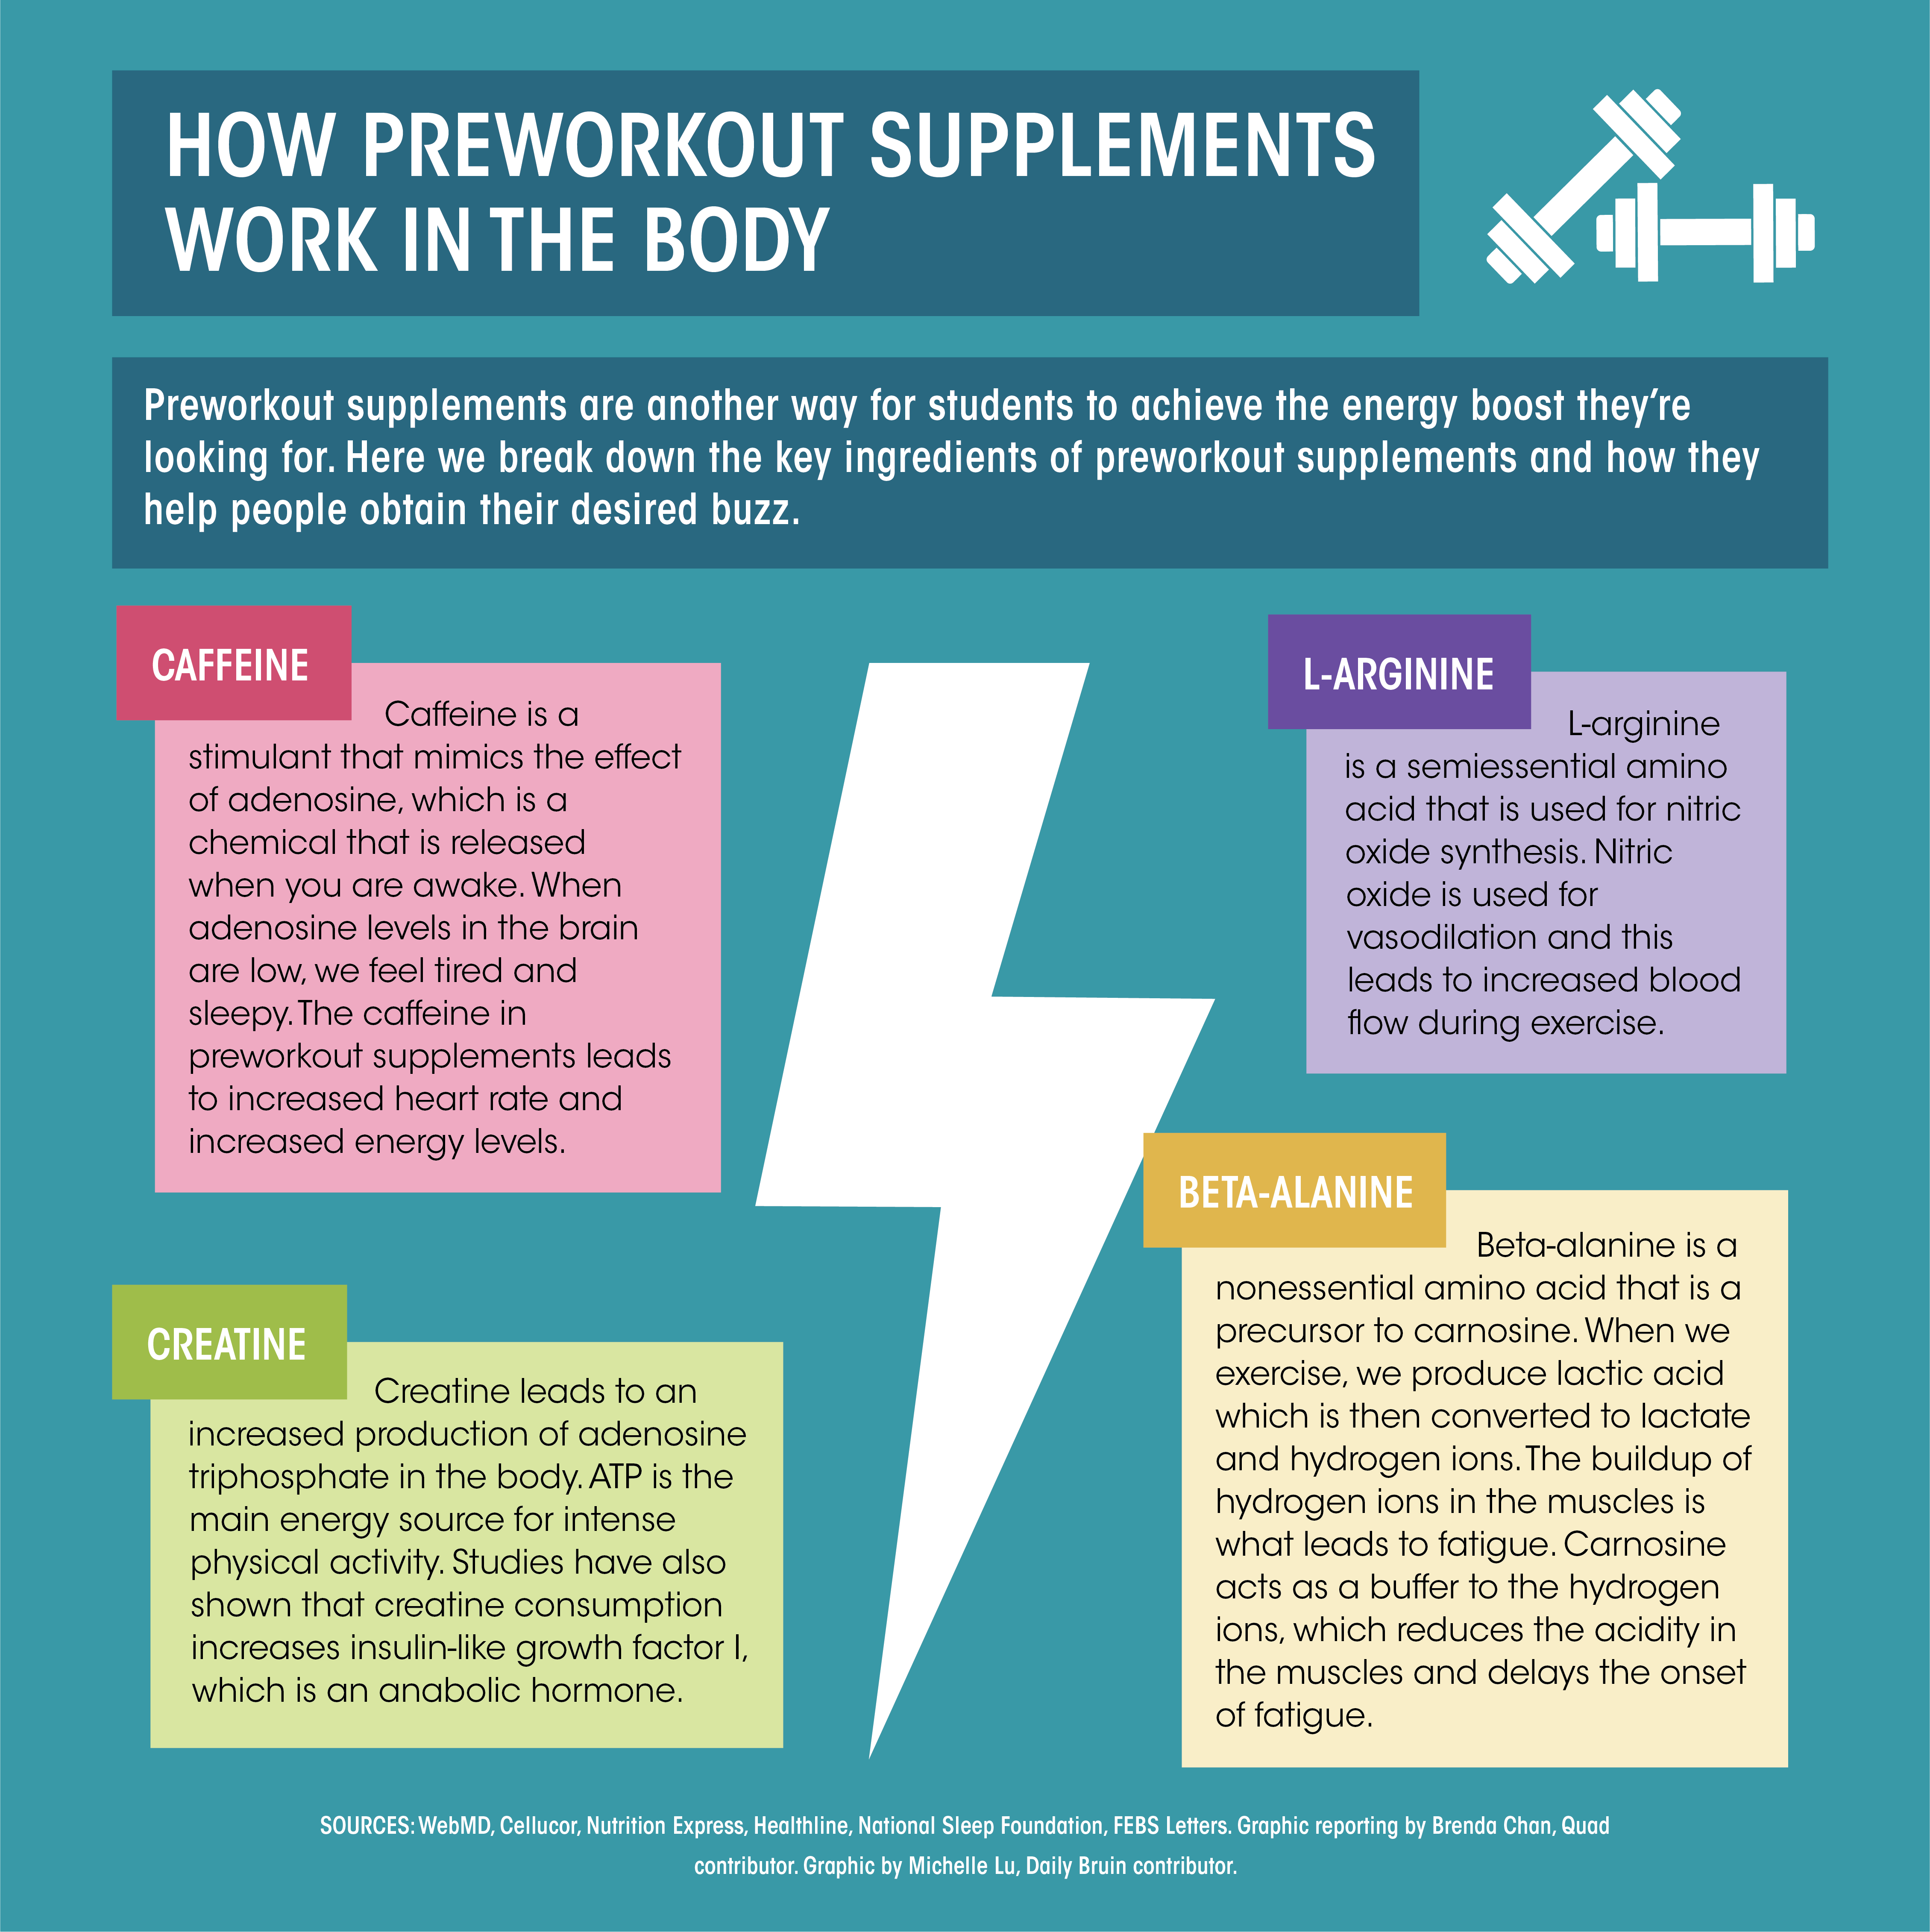 A guide to pre-workout supplements and